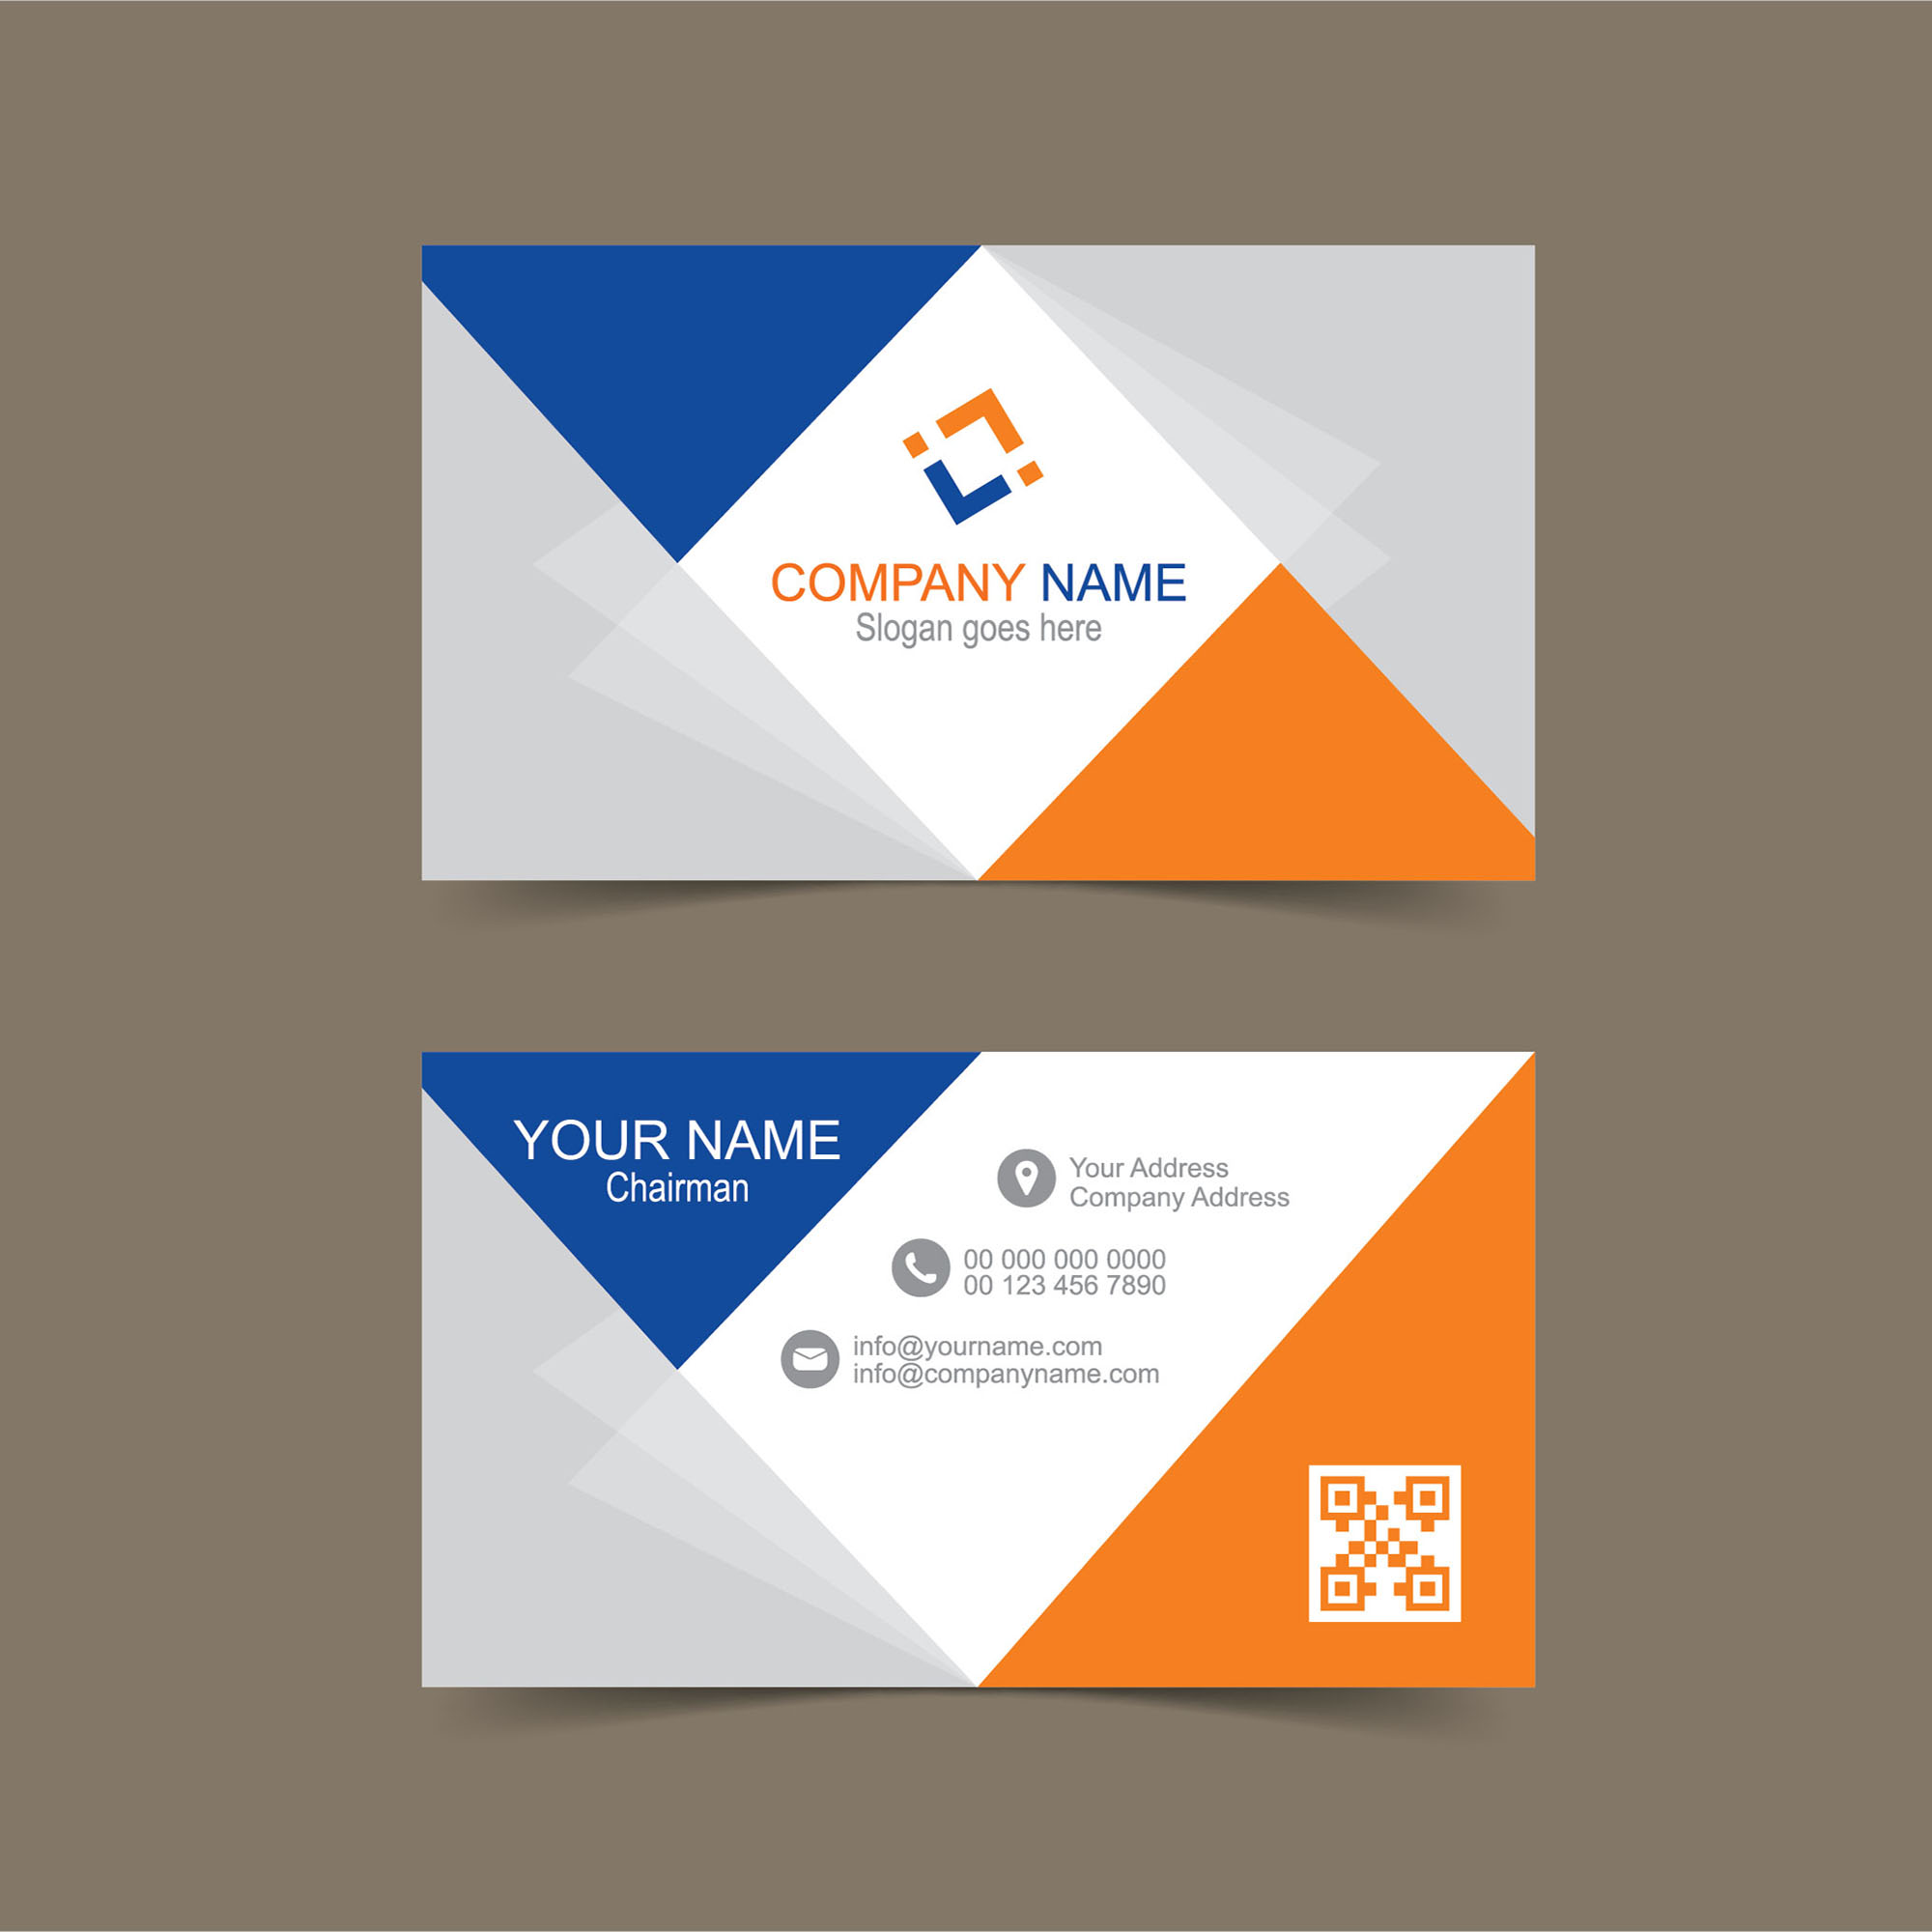 Free business card template for illustrator wisxi business card business cards business card design business card template design templates flashek Image collections